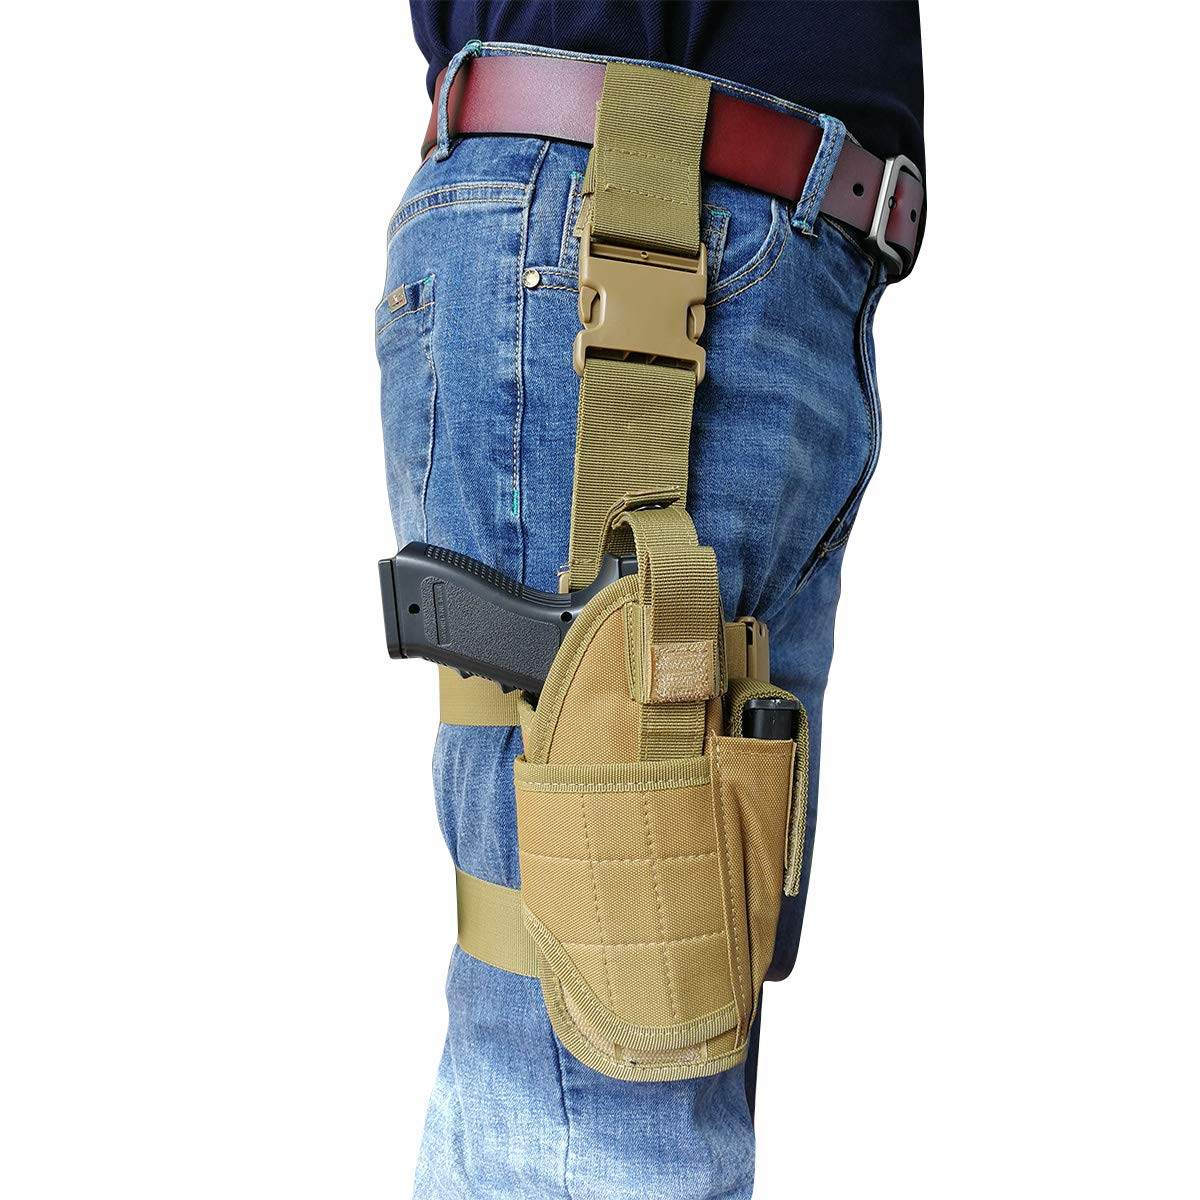 Best drop leg holster for 1911